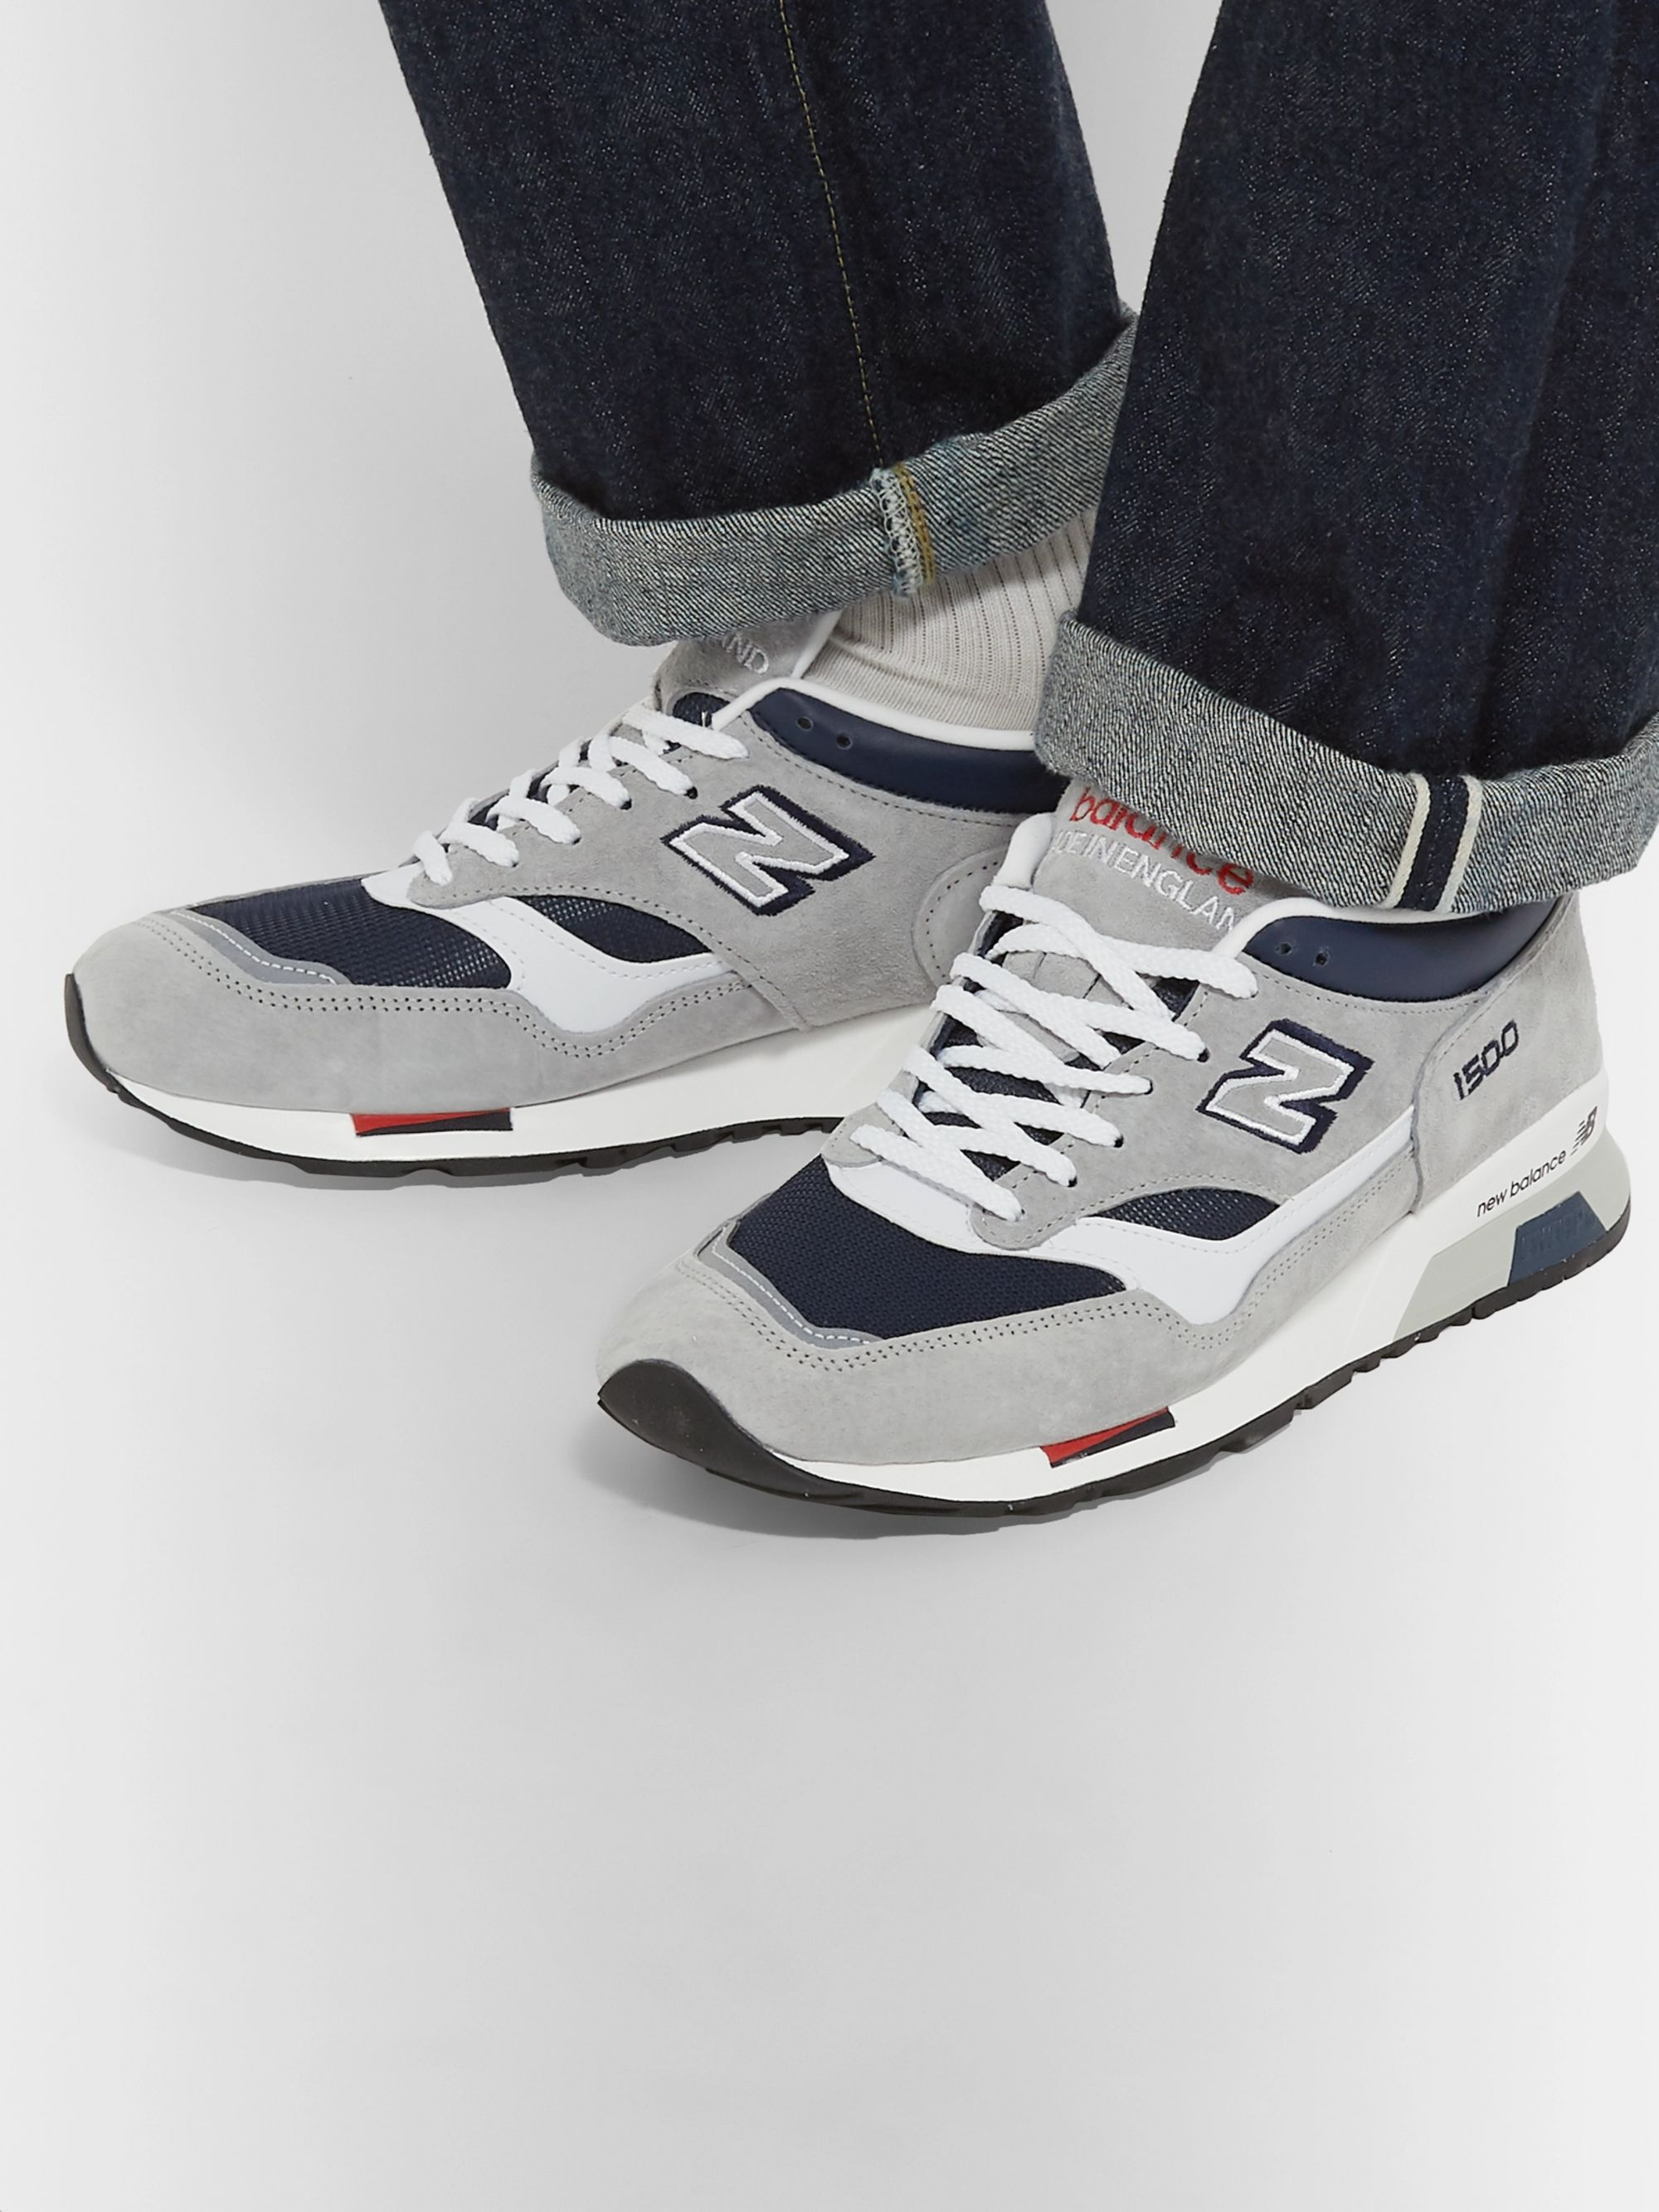 half off f6bce 7d5ce M1500 Suede, Leather and Mesh Sneakers